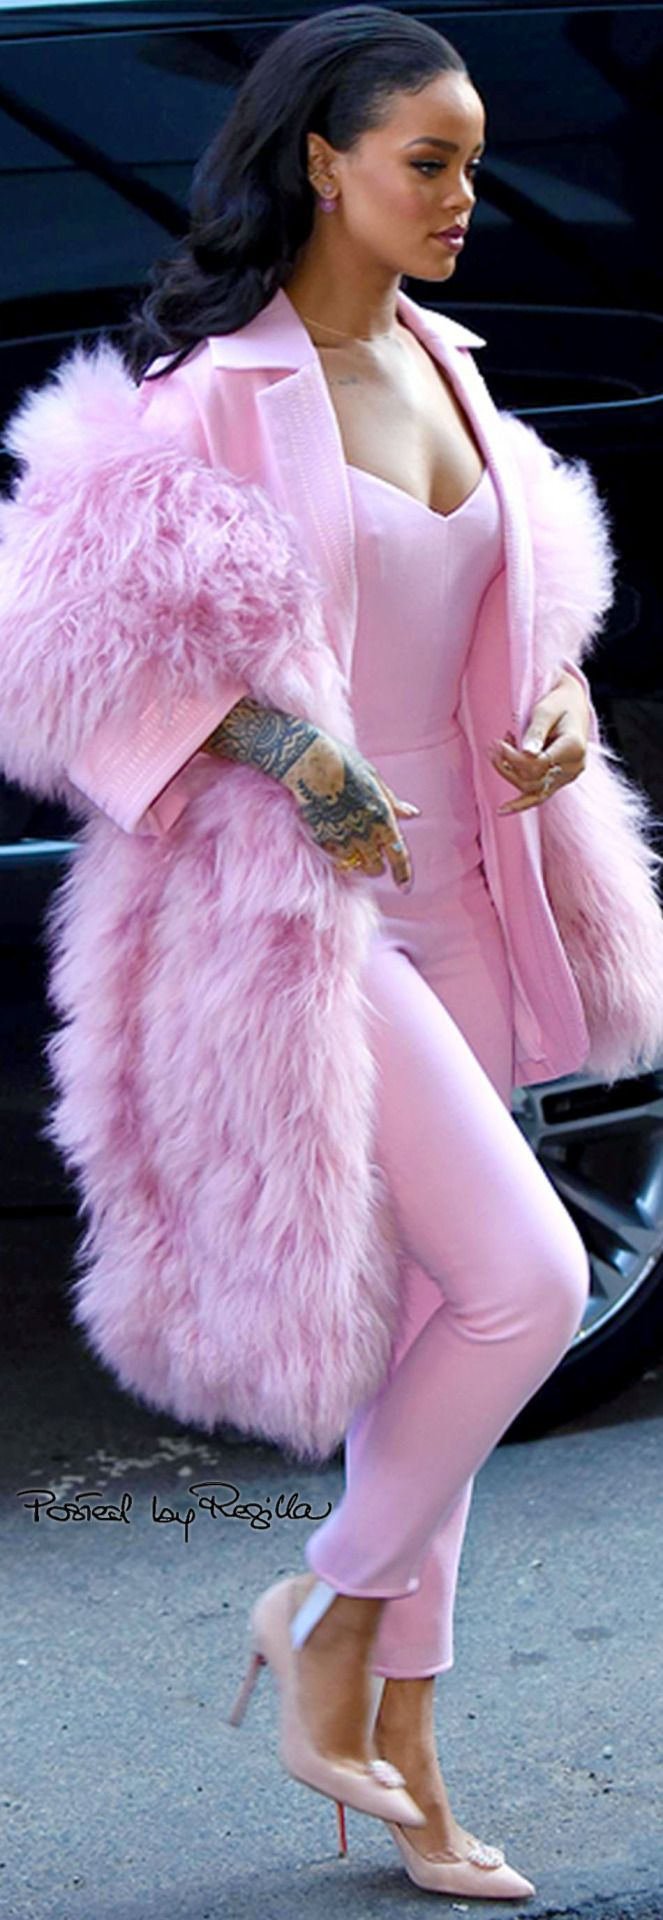 Regilla ⚜ Rihanna in pink. She looks stunning.  Add our #Osaka design #shoe in pink $195 available from www.octaviashoes.com.